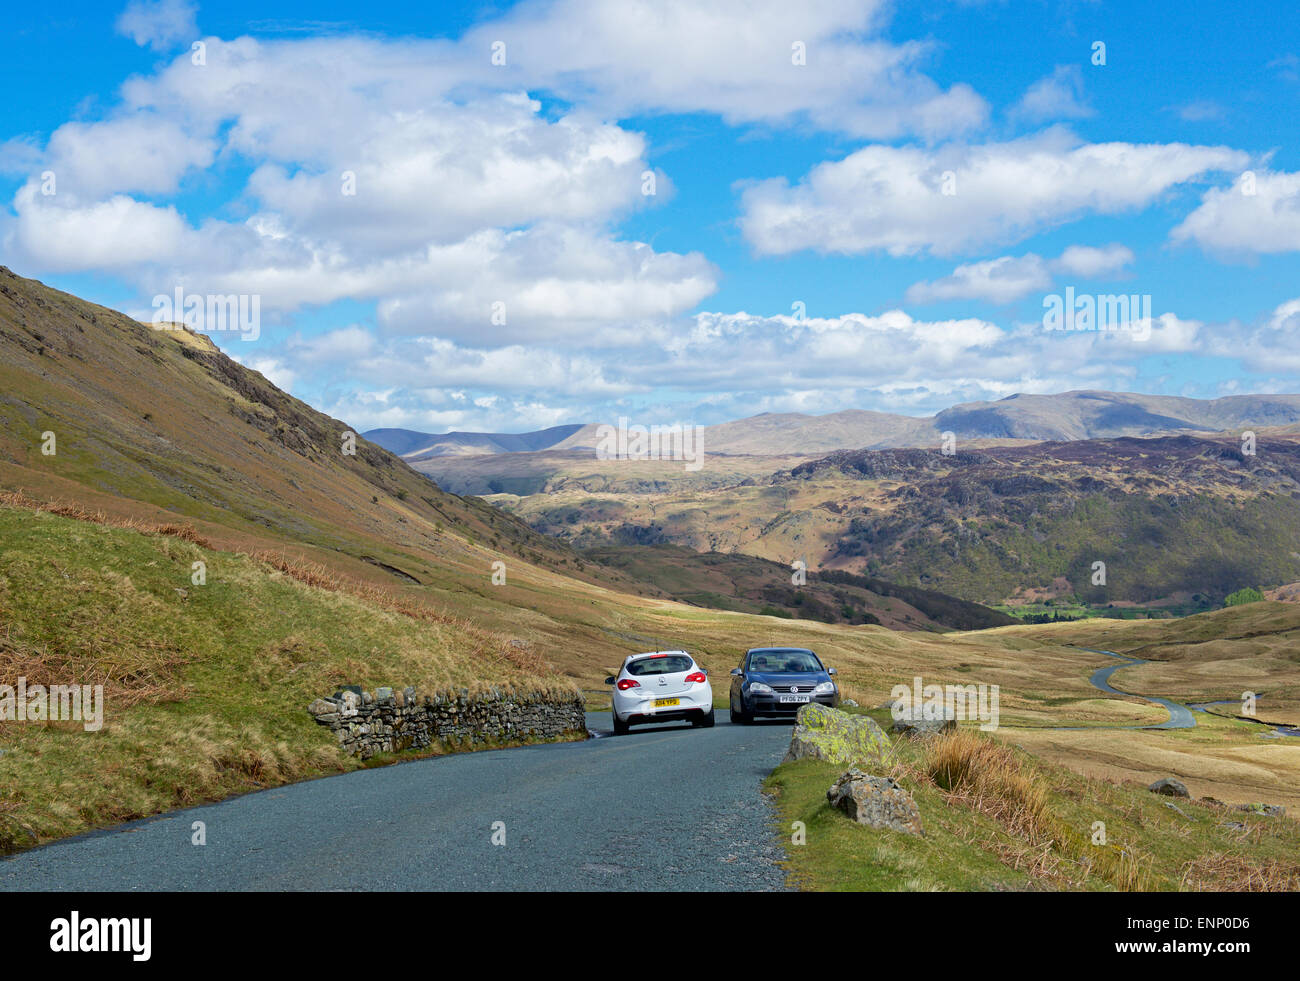 Two cars passing on the narrow Honister Pass, Lake District National Park, Cumbria, England UK - Stock Image